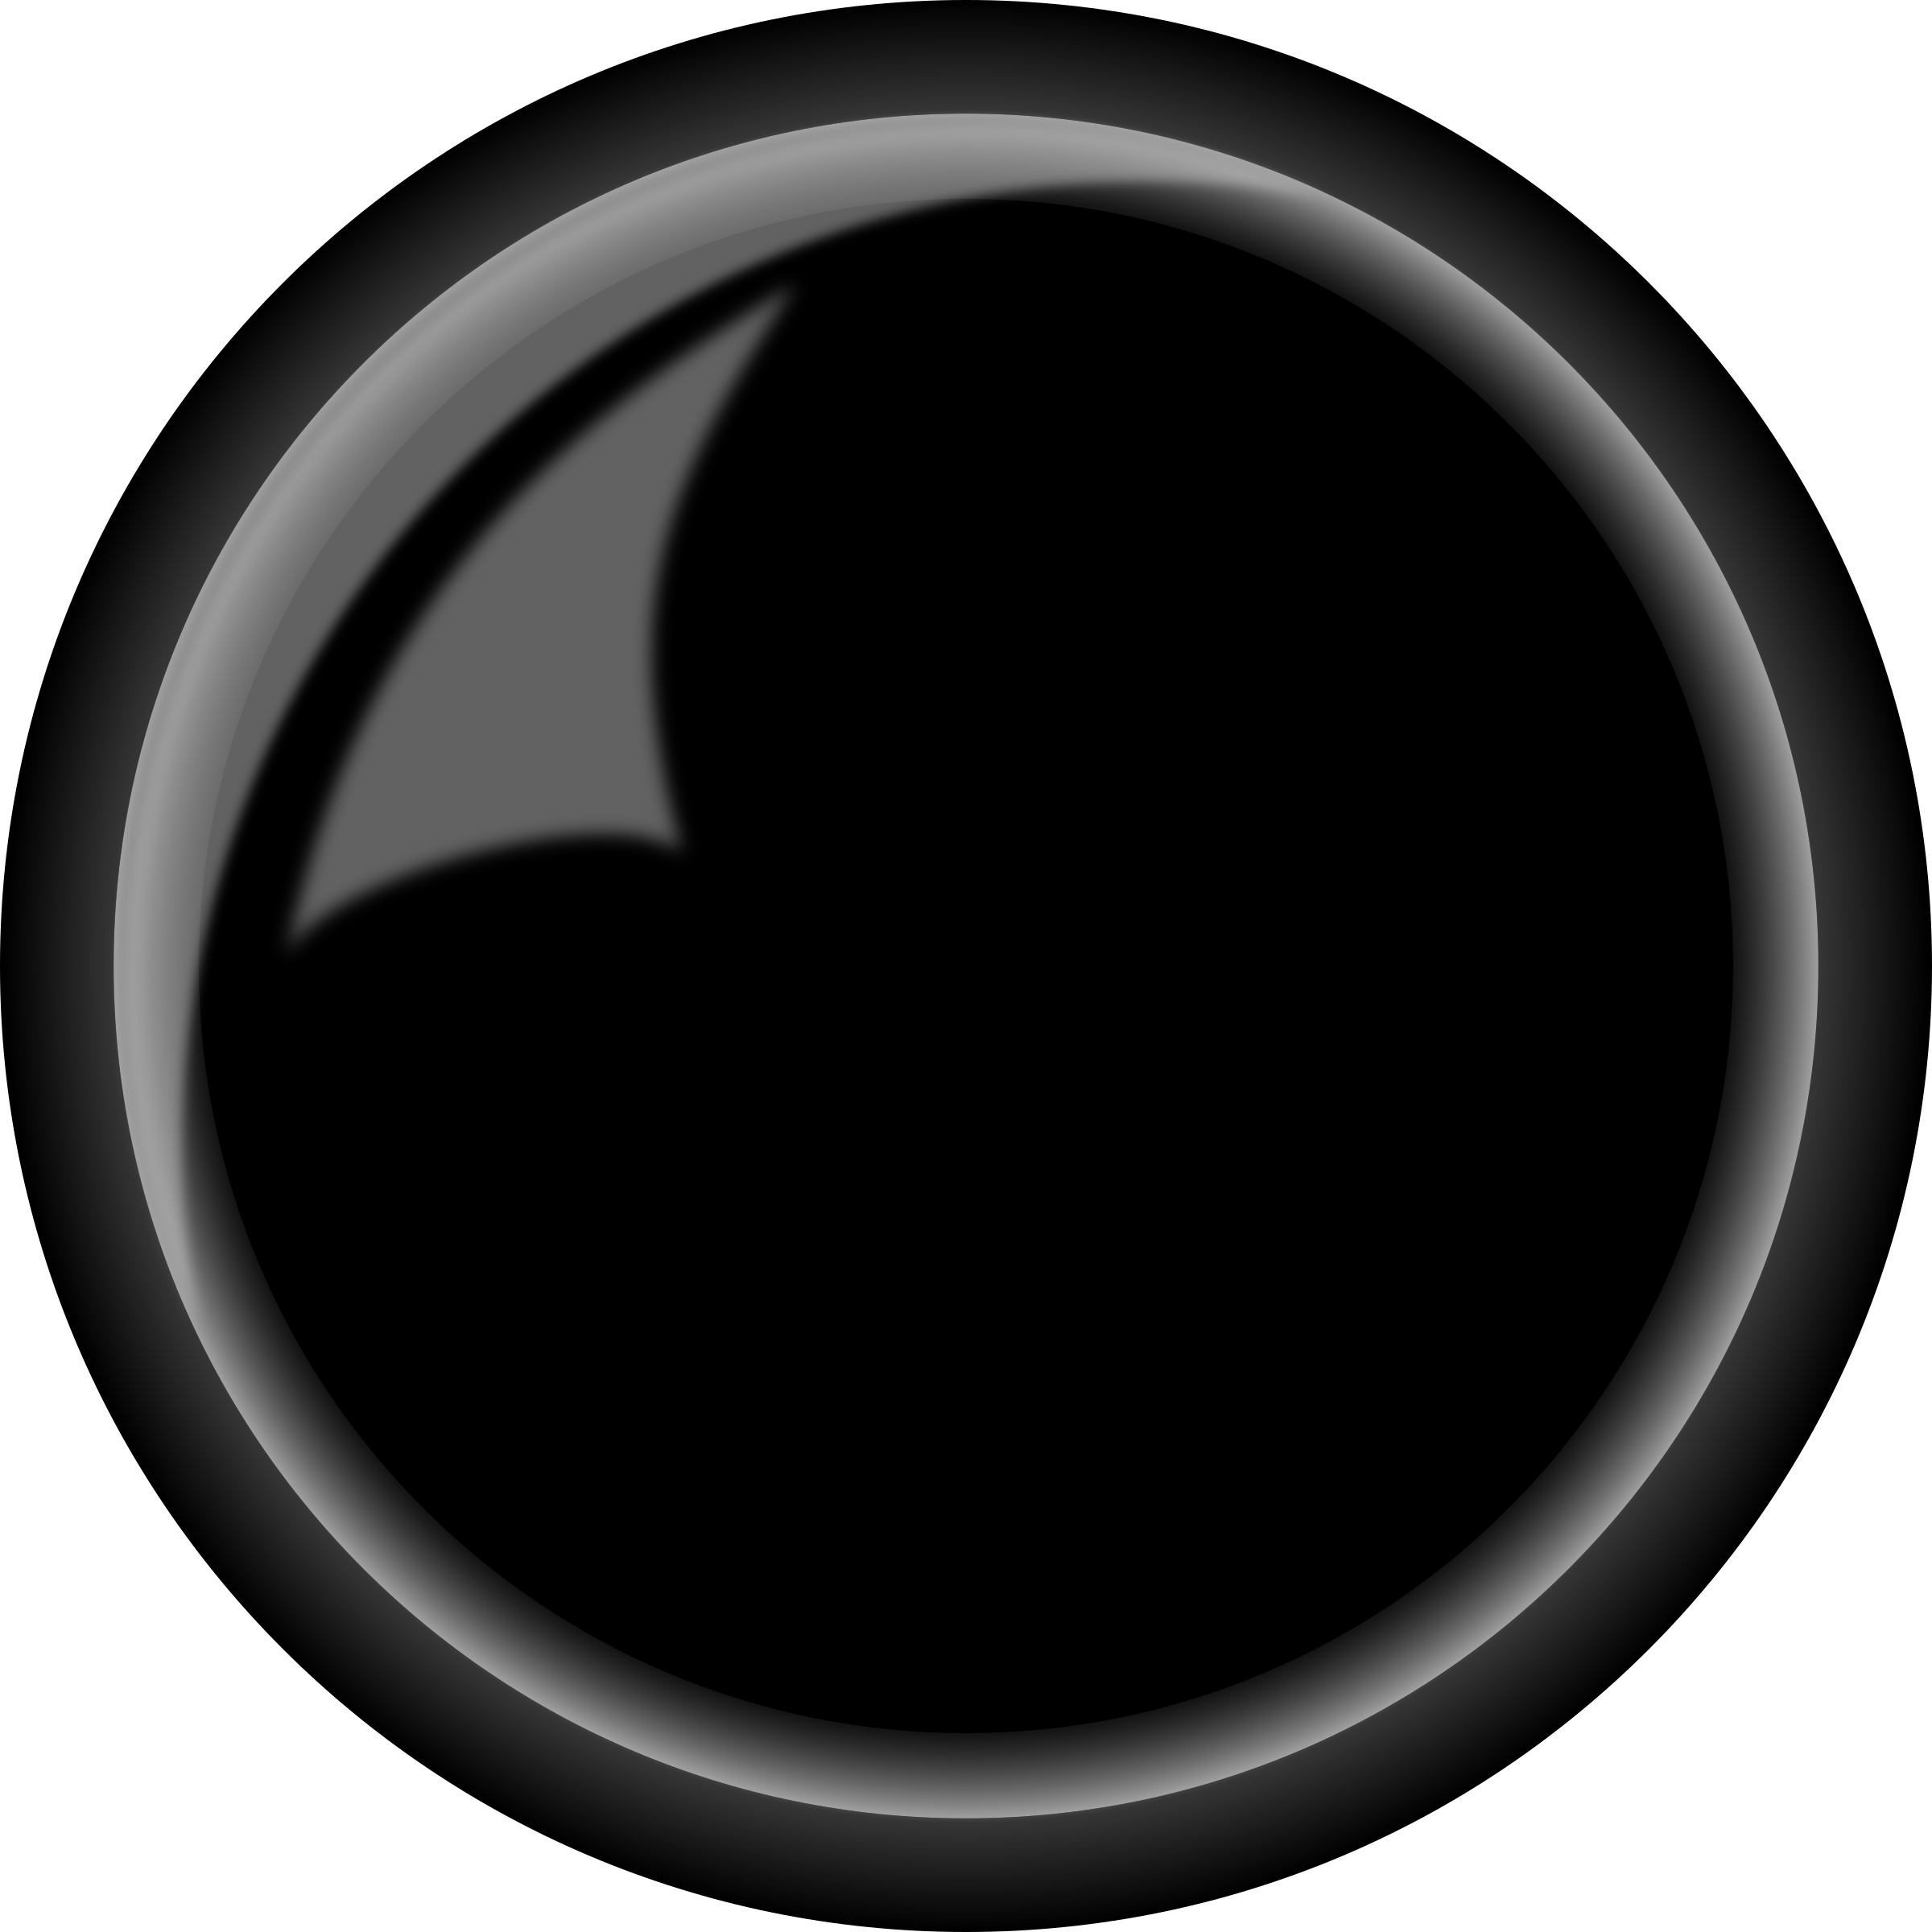 Black button png. Round shiny icons free